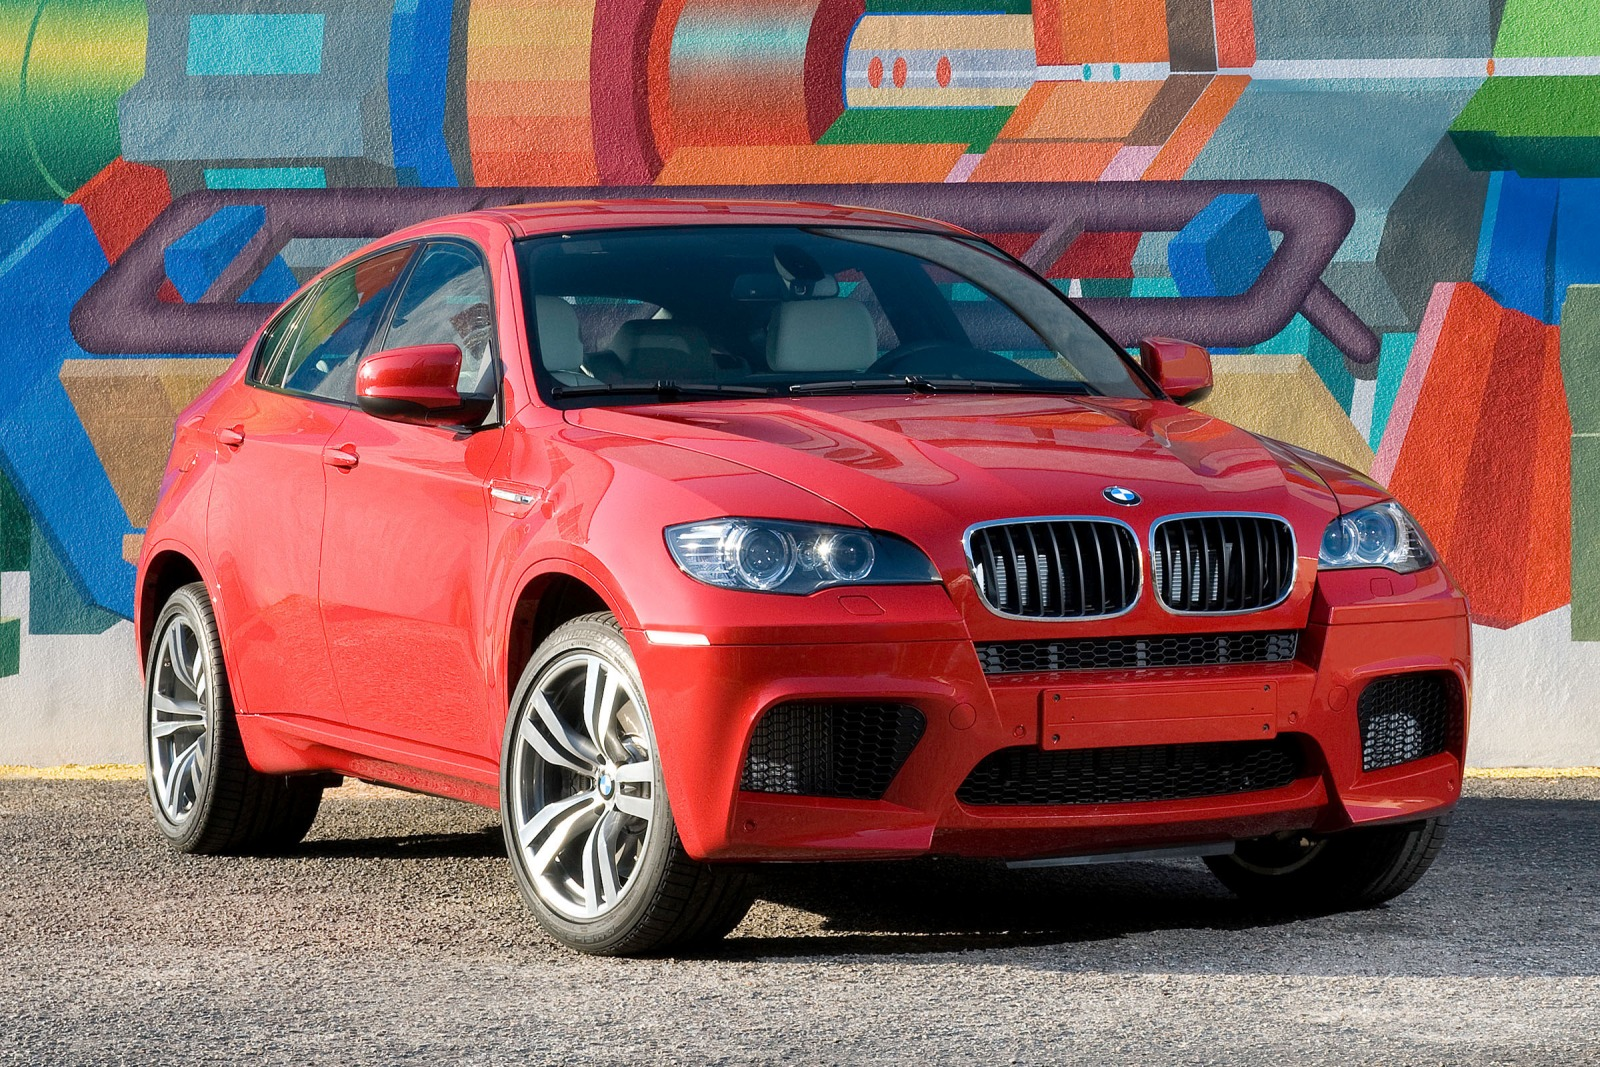 2011 Bmw X6 M Information And Photos Zombiedrive